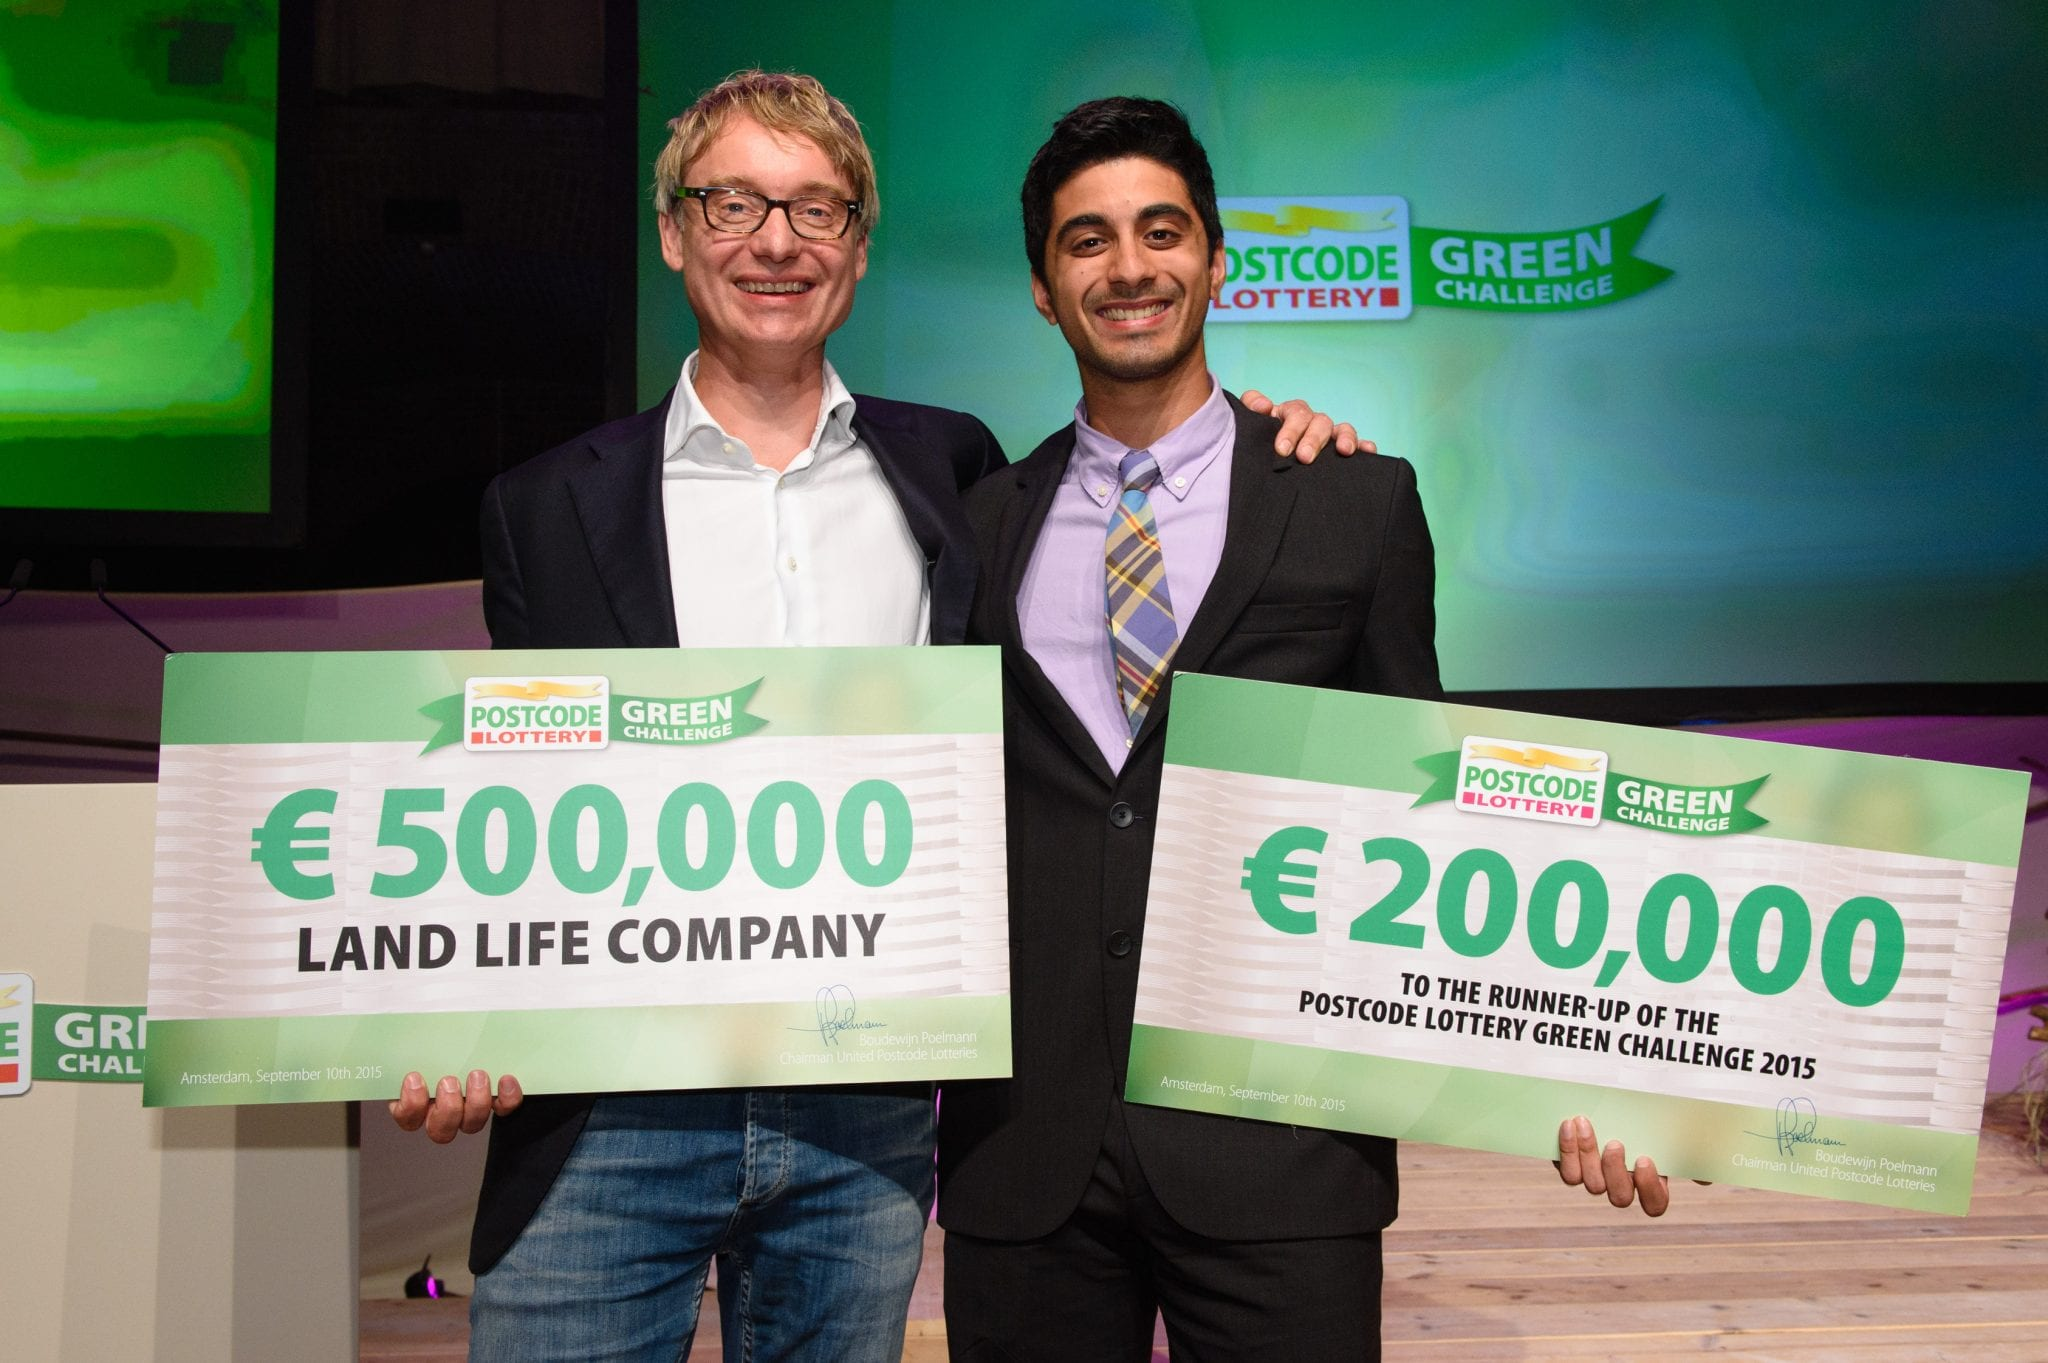 Green Dutch startup Land Life Company raises €3.5M in series A funding